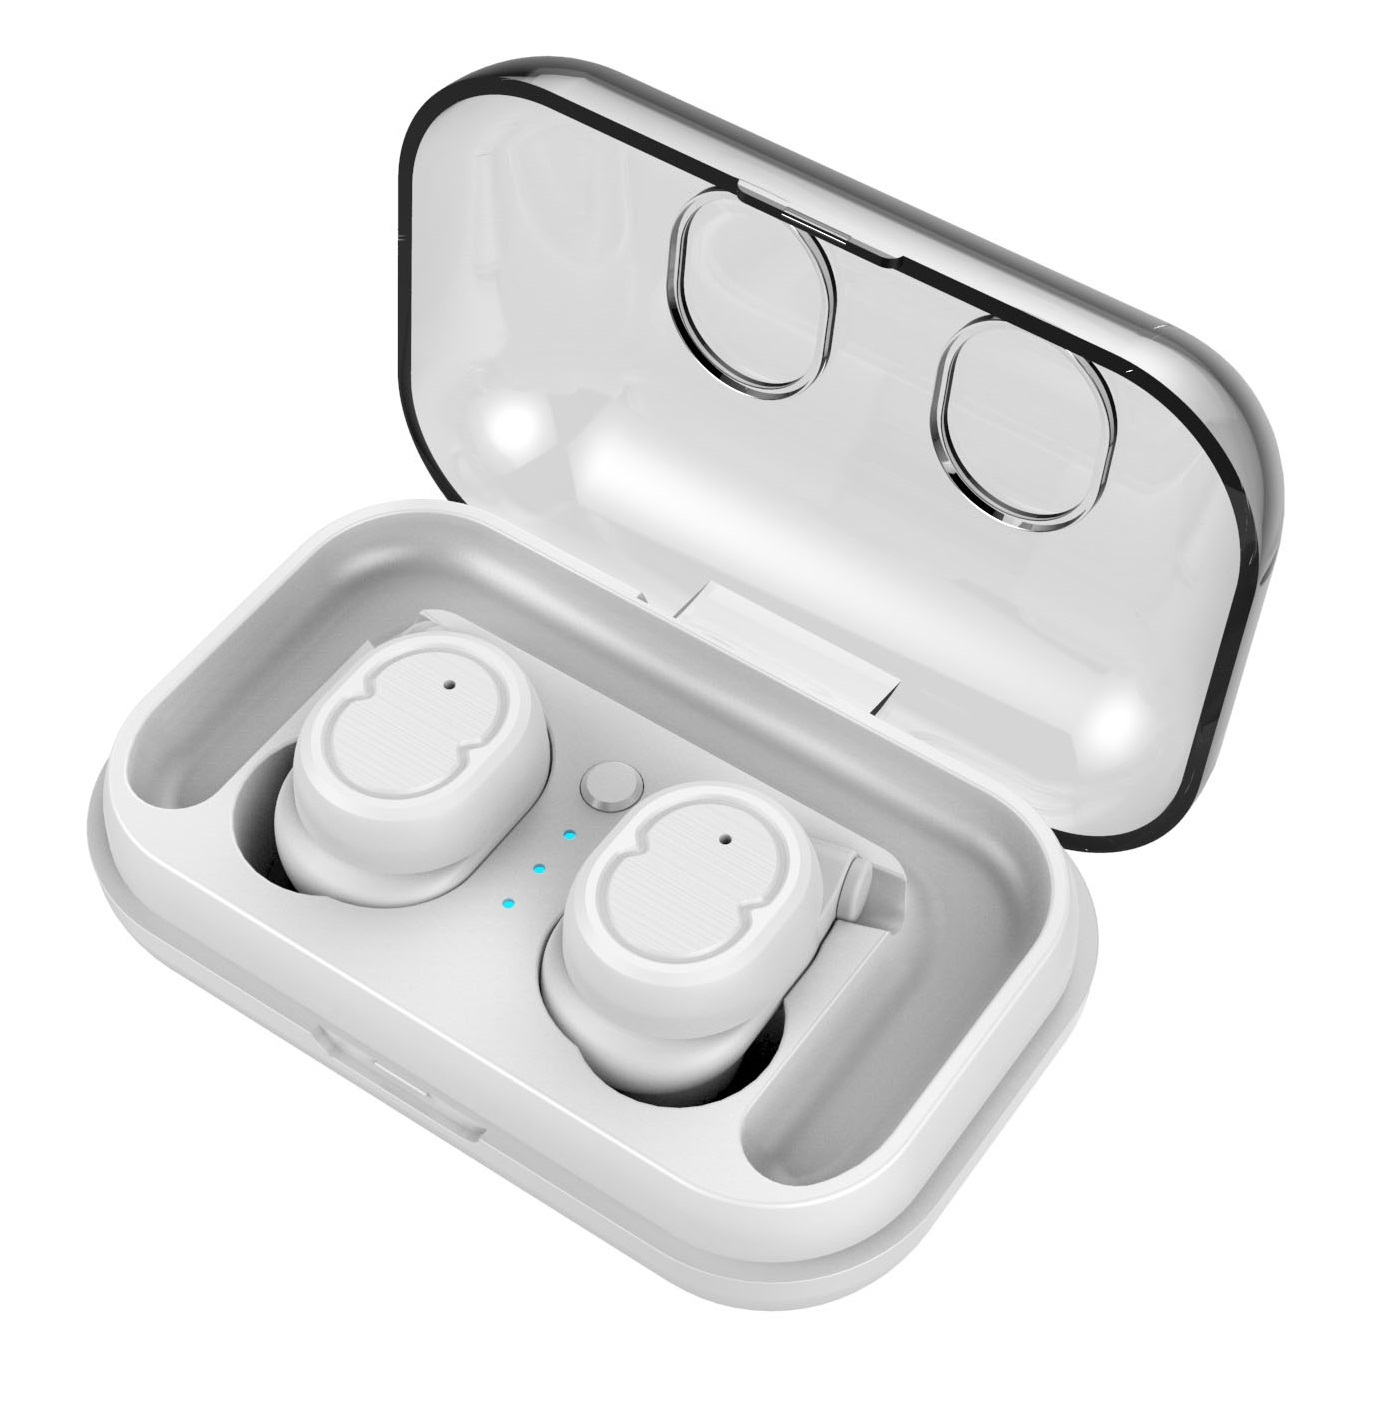 Wireless Stereo Sport Earphones - With Charging Box (White) image